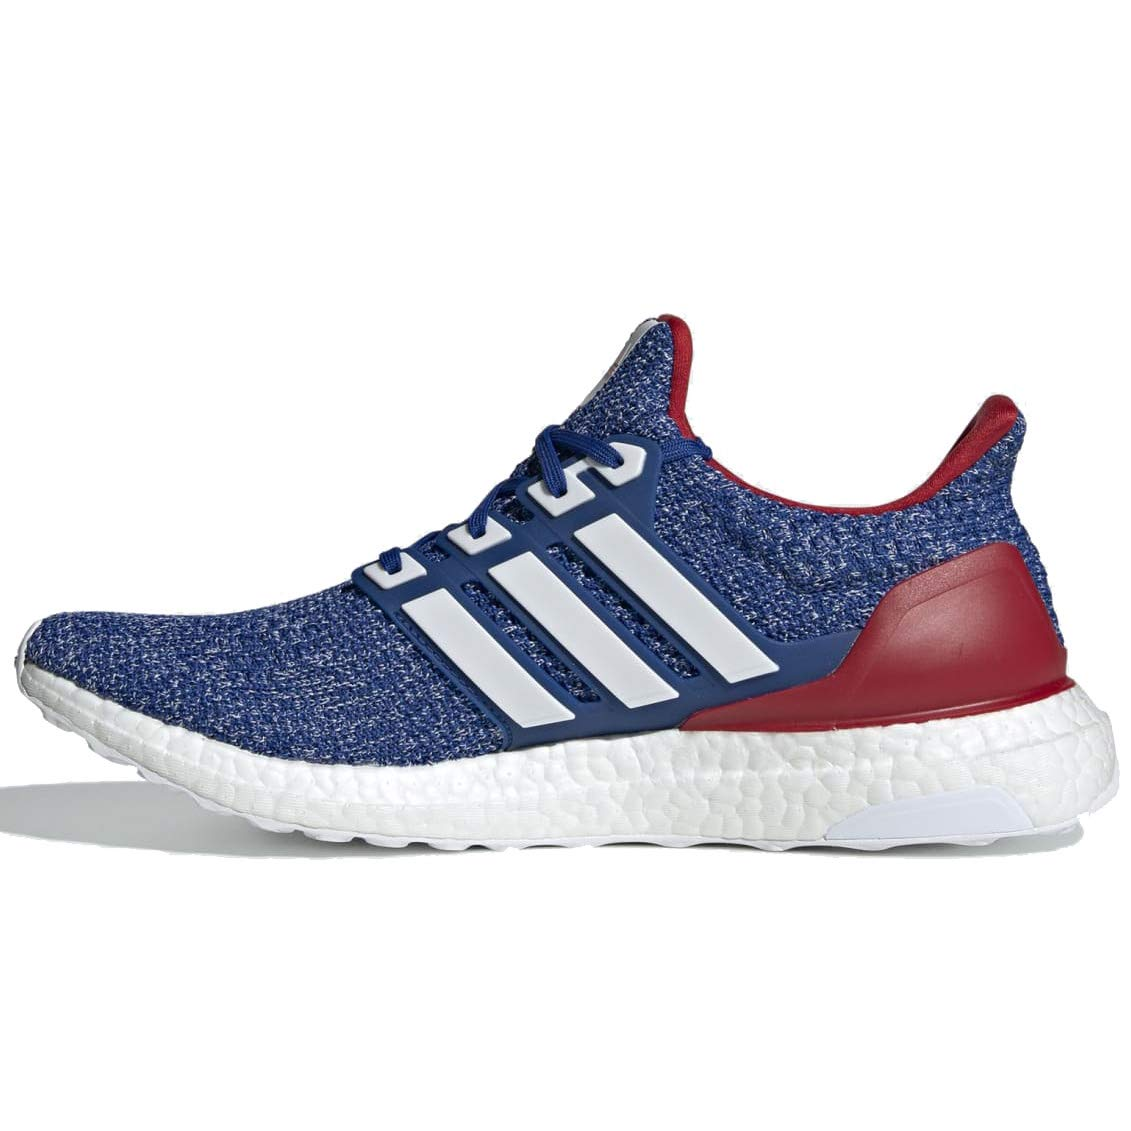 Collegiate Royal Footwear blanc Power rouge adidas Ultra Boost W, Chaussures de Sport Femme 43 EU